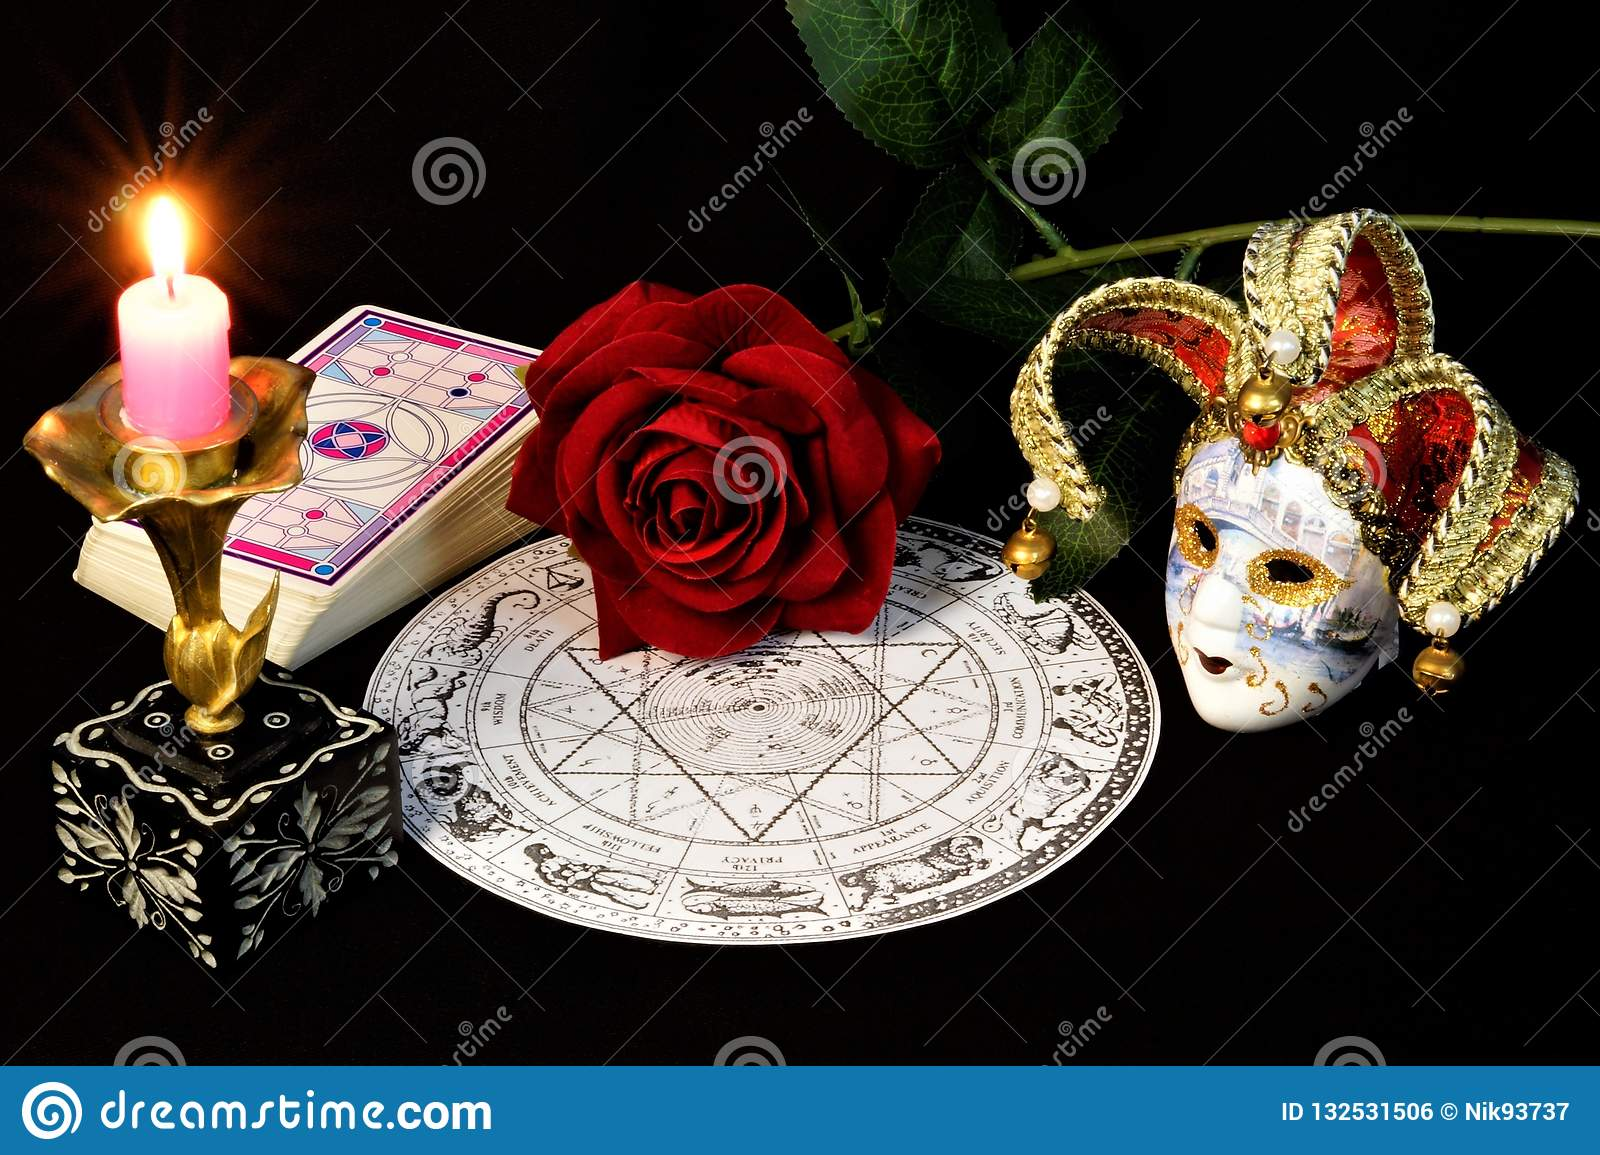 Zodiac horoscope, bright candle, red rose, Queen of flowers, cards for predictions, carnival jester mask, symbol of transformation